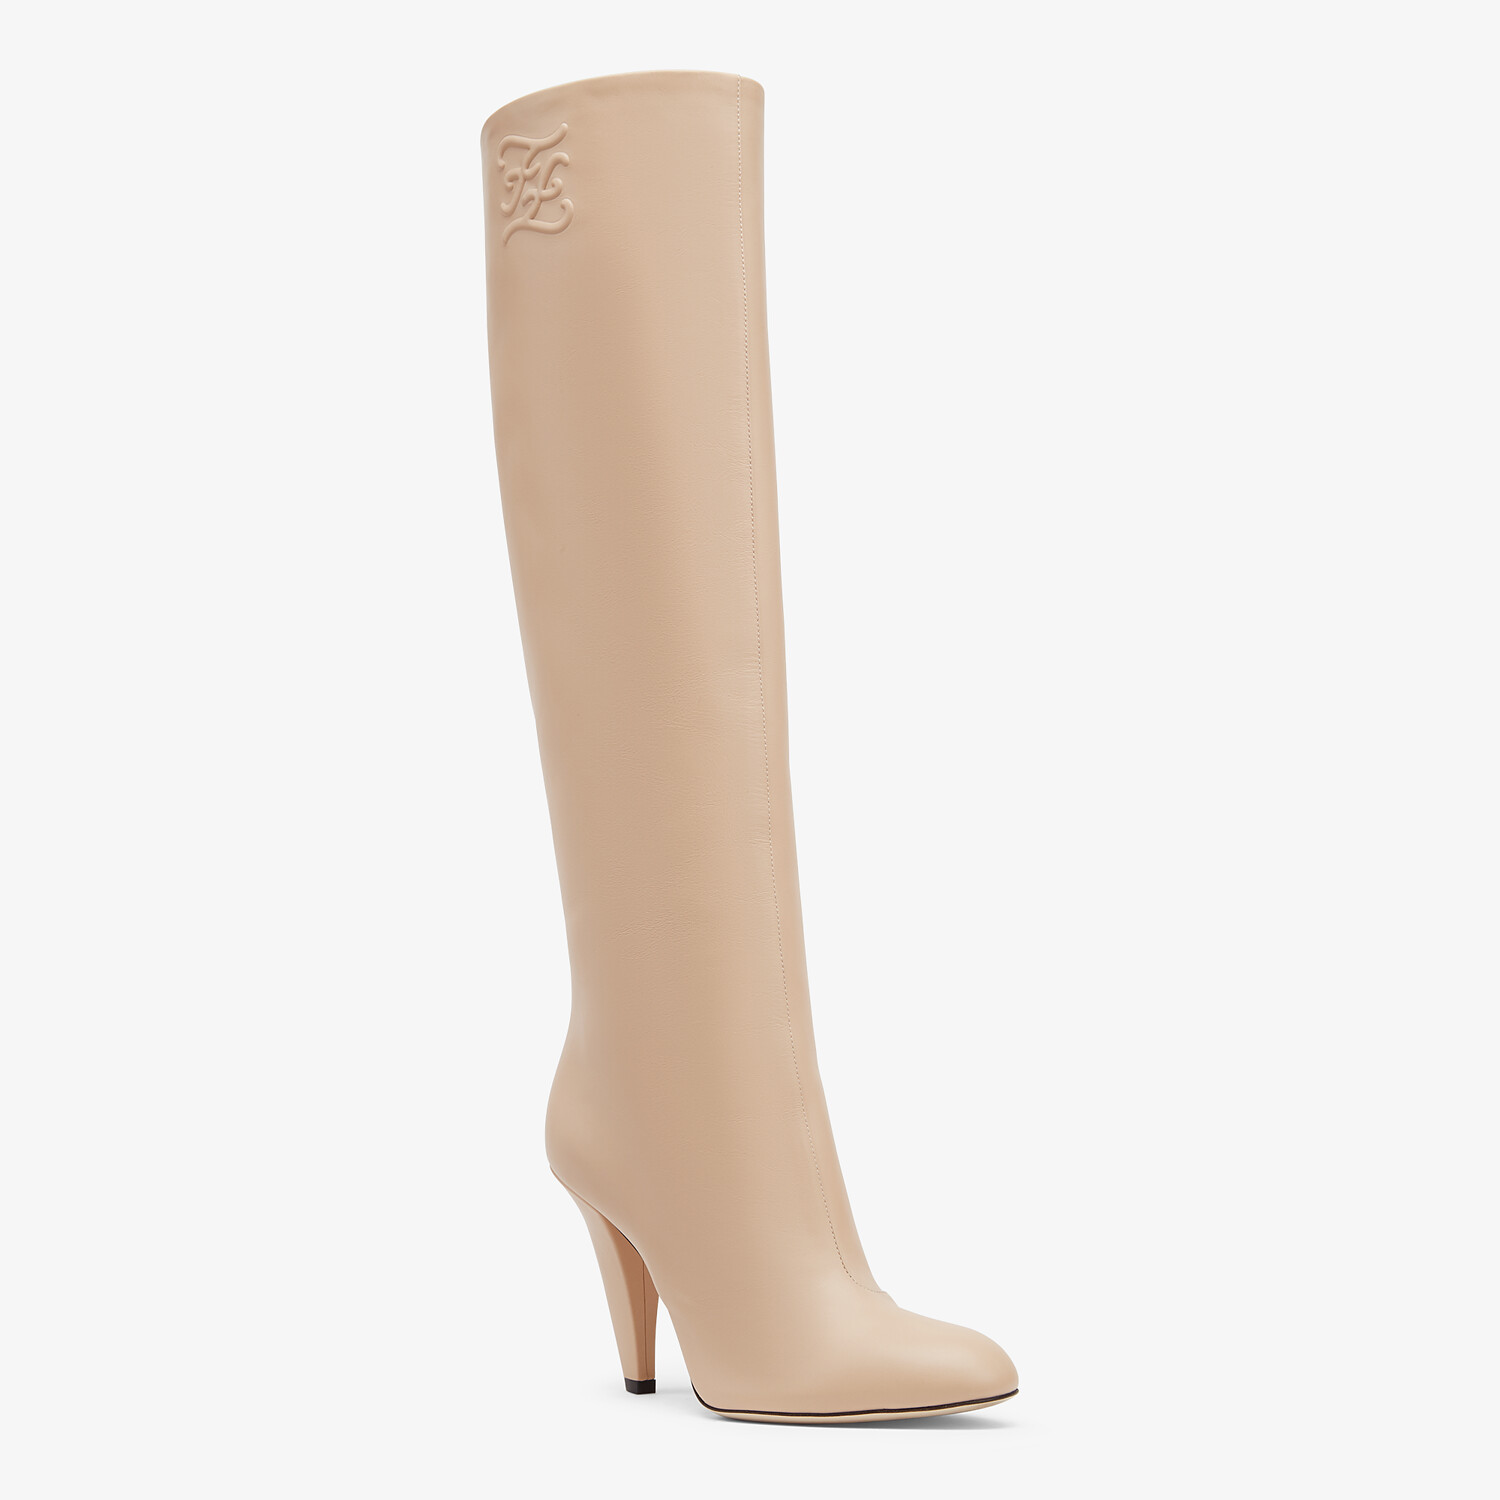 FENDI KARLIGRAPHY - Pink leather, high-heeled boots - view 2 detail